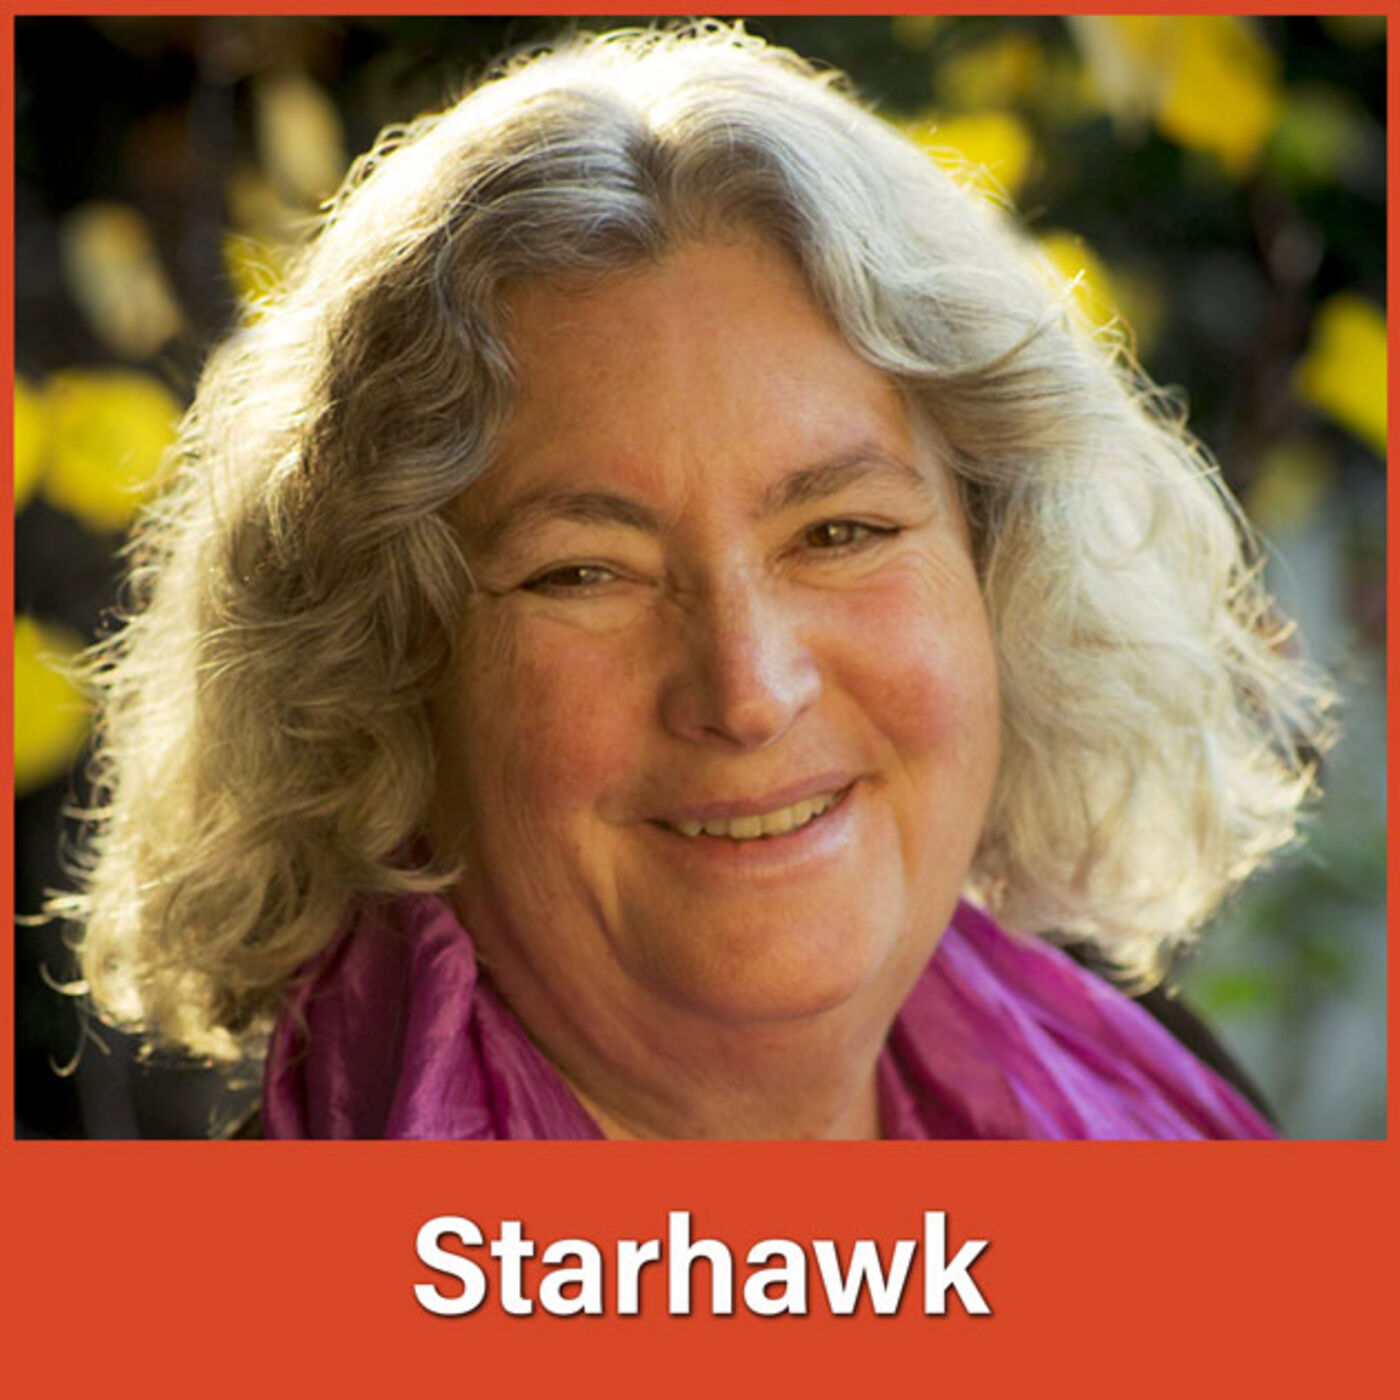 #30 Starhawk: Fostering Interconnection and Compassion